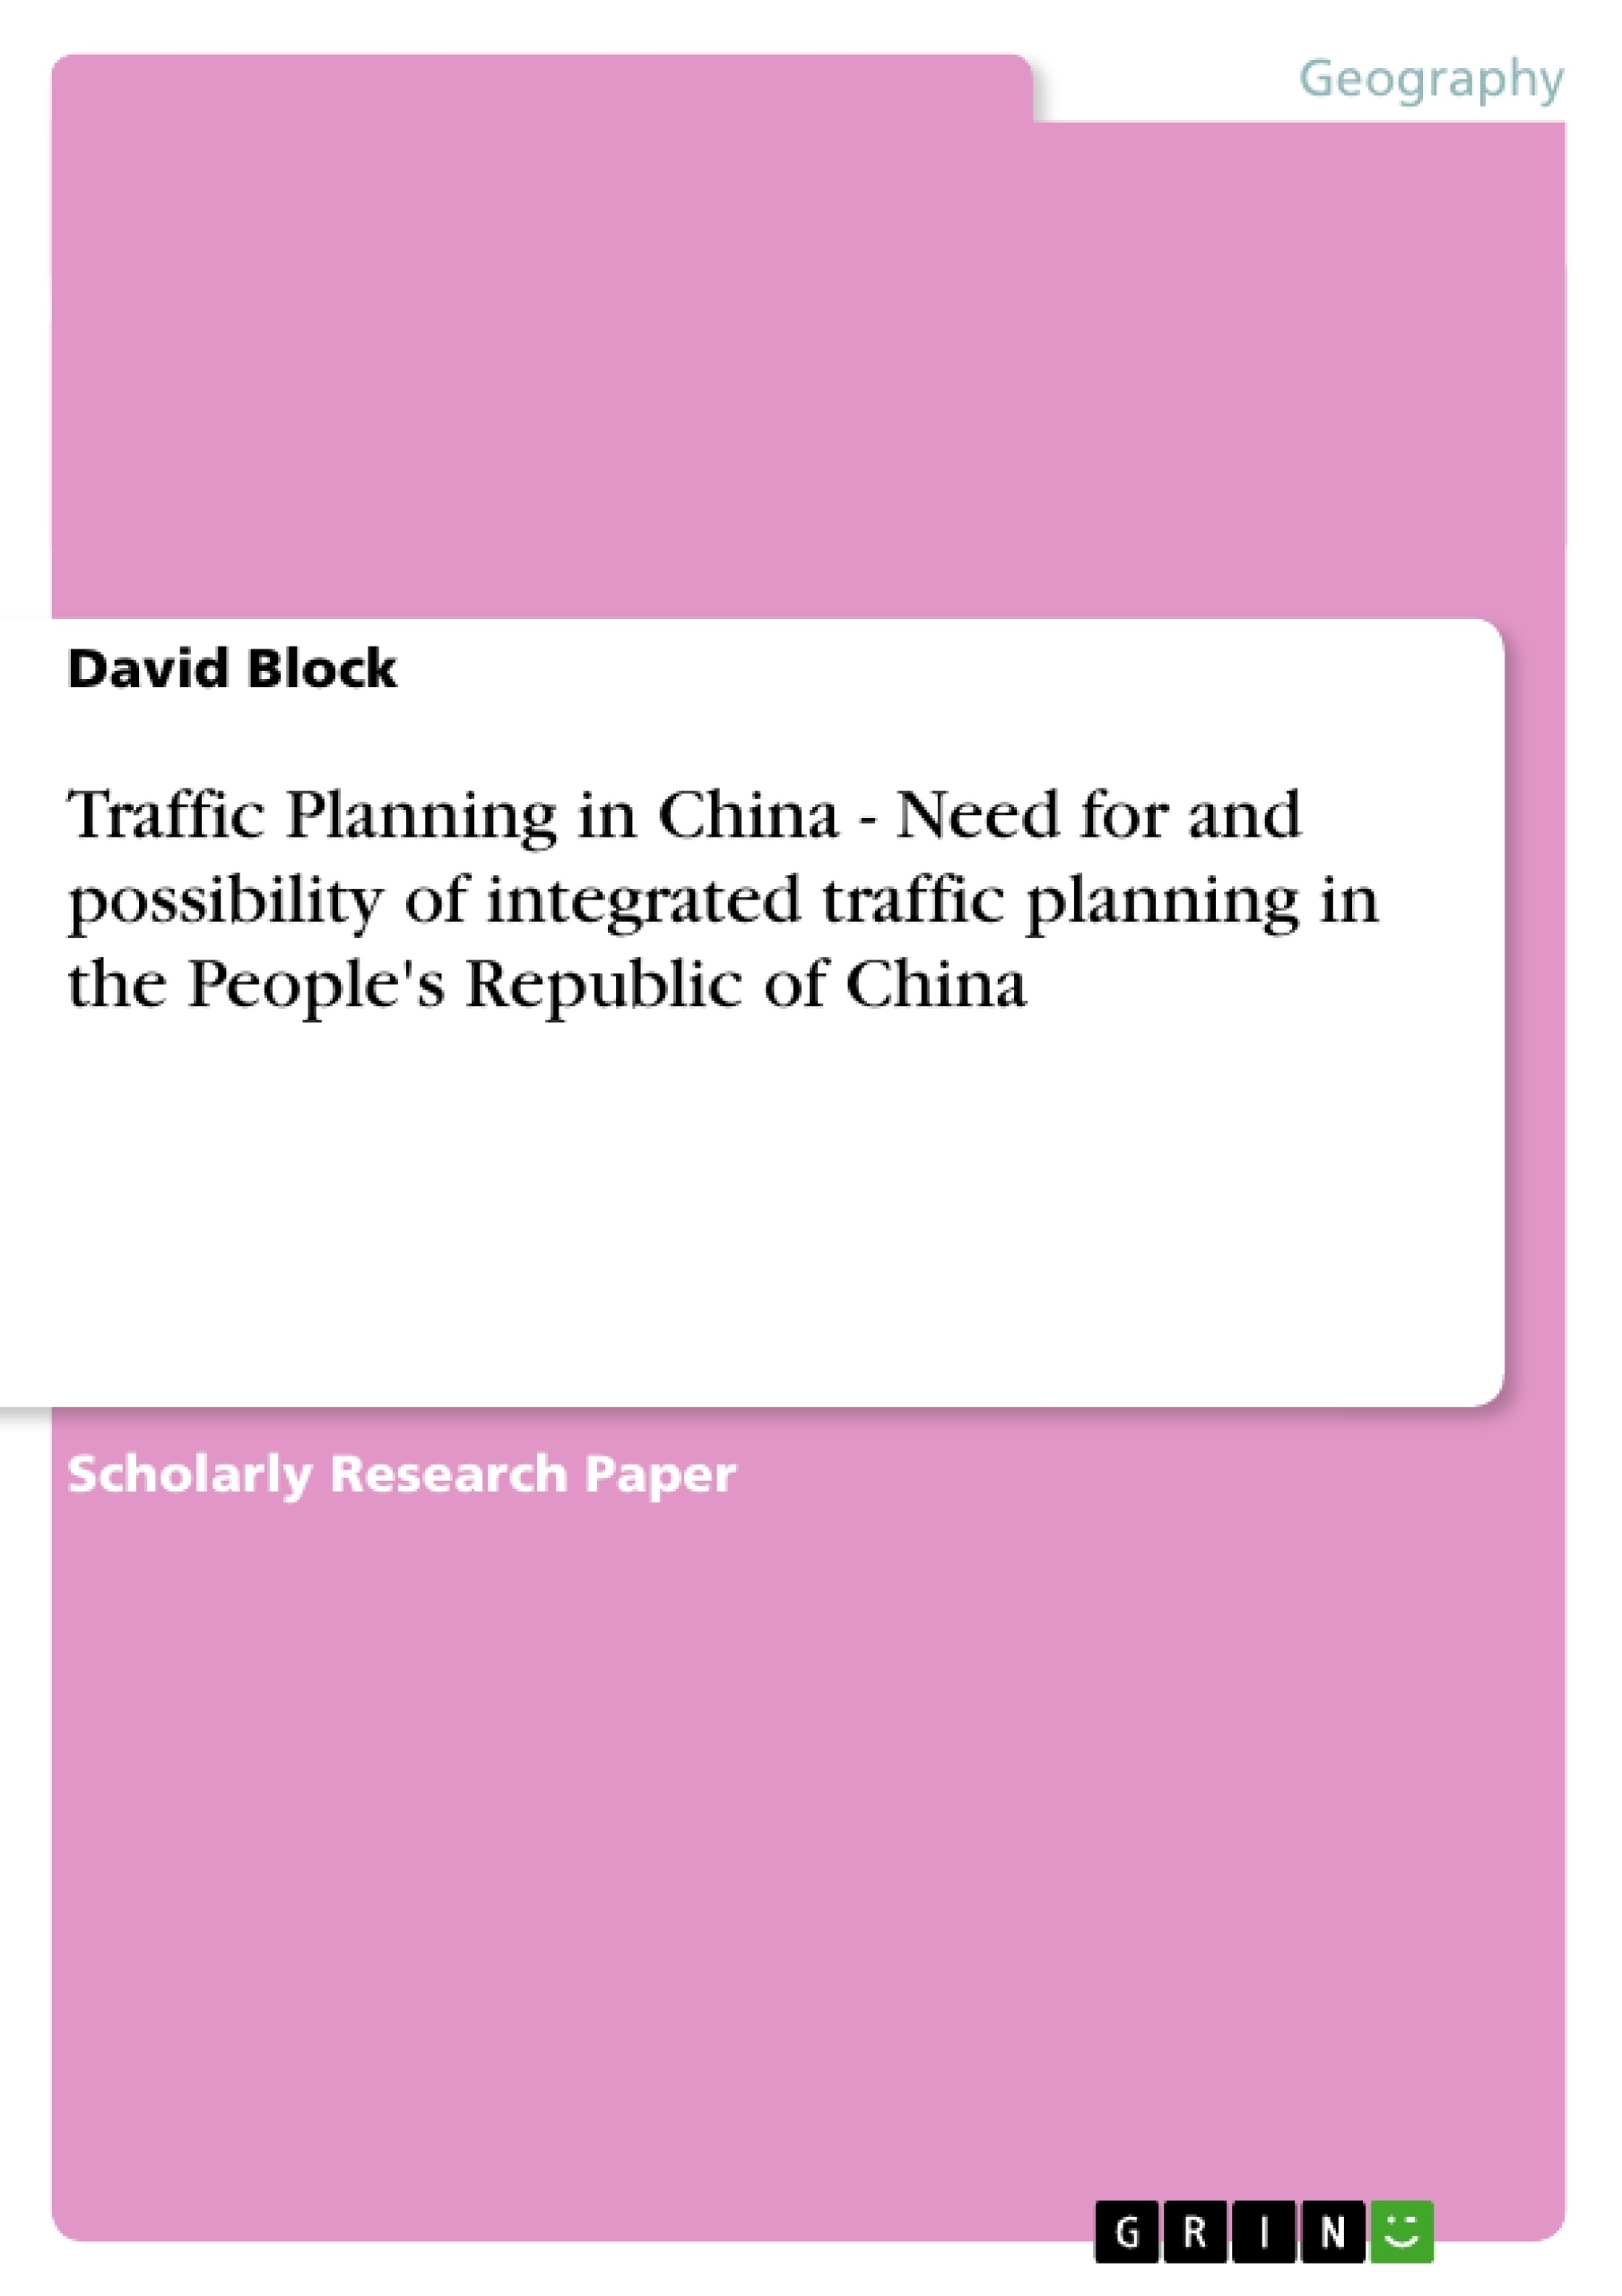 Title: Traffic Planning in China - Need for and possibility of integrated traffic planning in the People's Republic of China